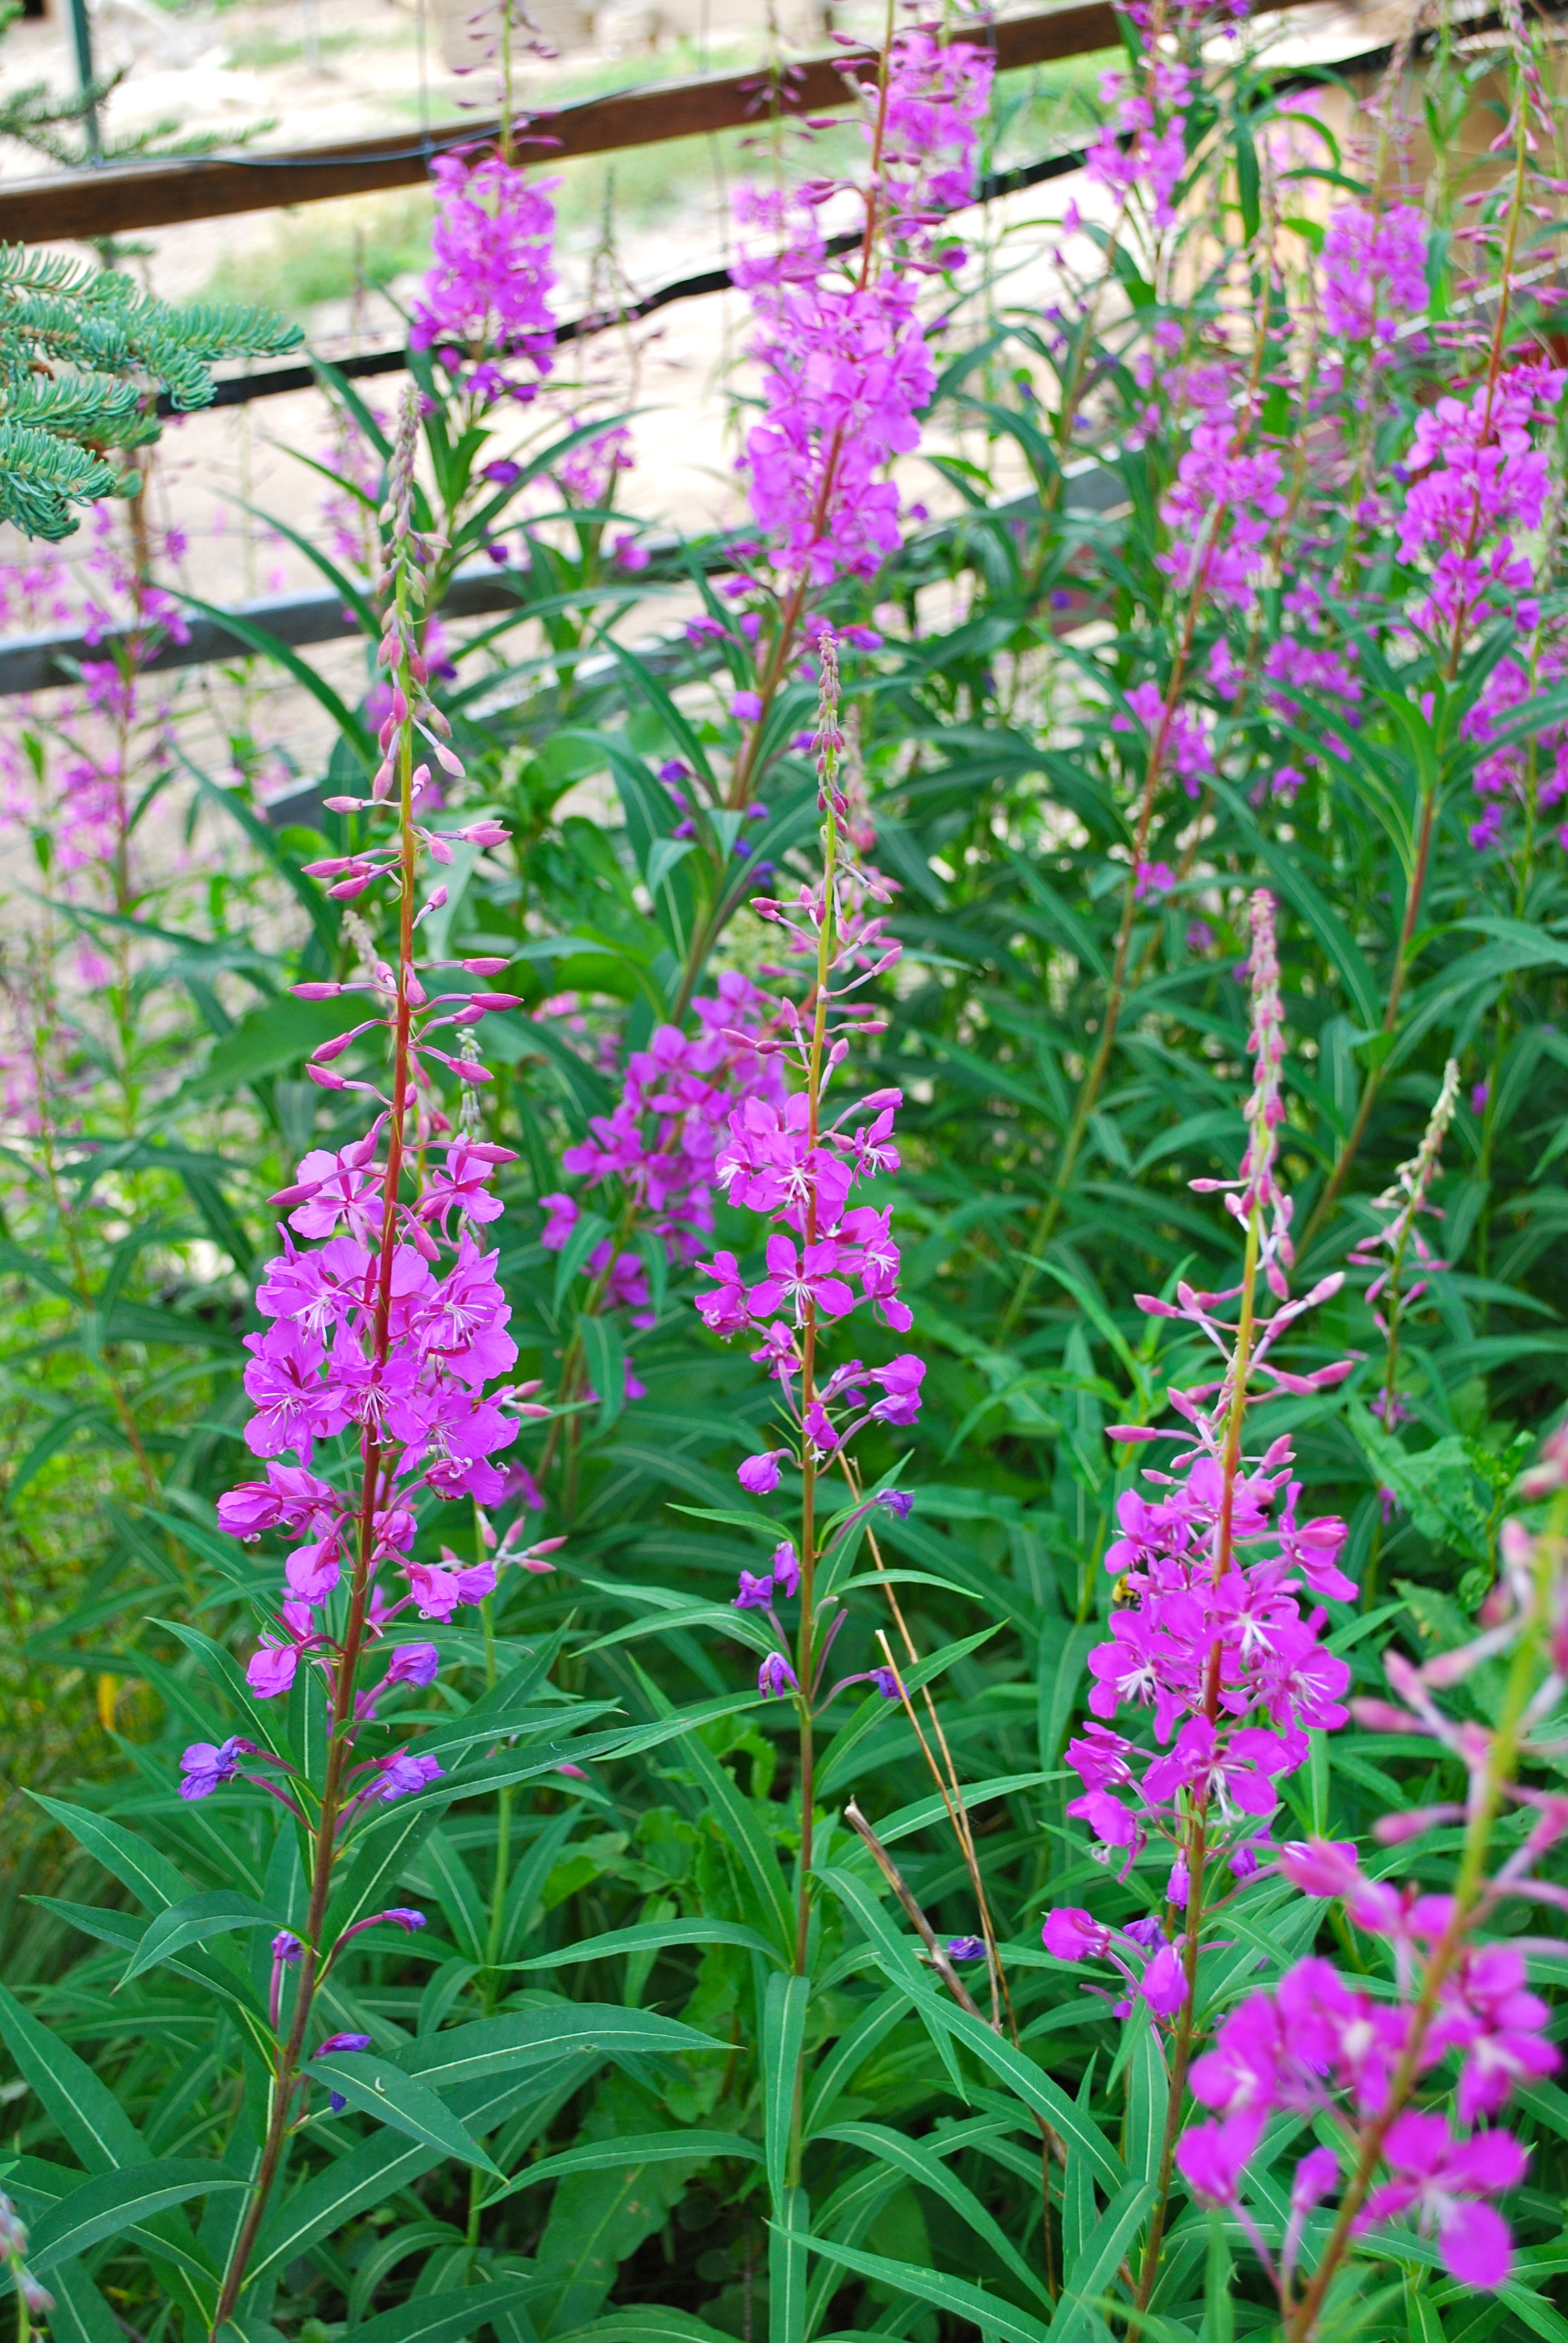 fireweed family members Epilobium: epilobium,, genus of about 200 plants, in the evening primrose family (onagraceae), native to most temperate regions it includes fireweed (qv species e angustifolium), which rapidly covers newly burned areas.